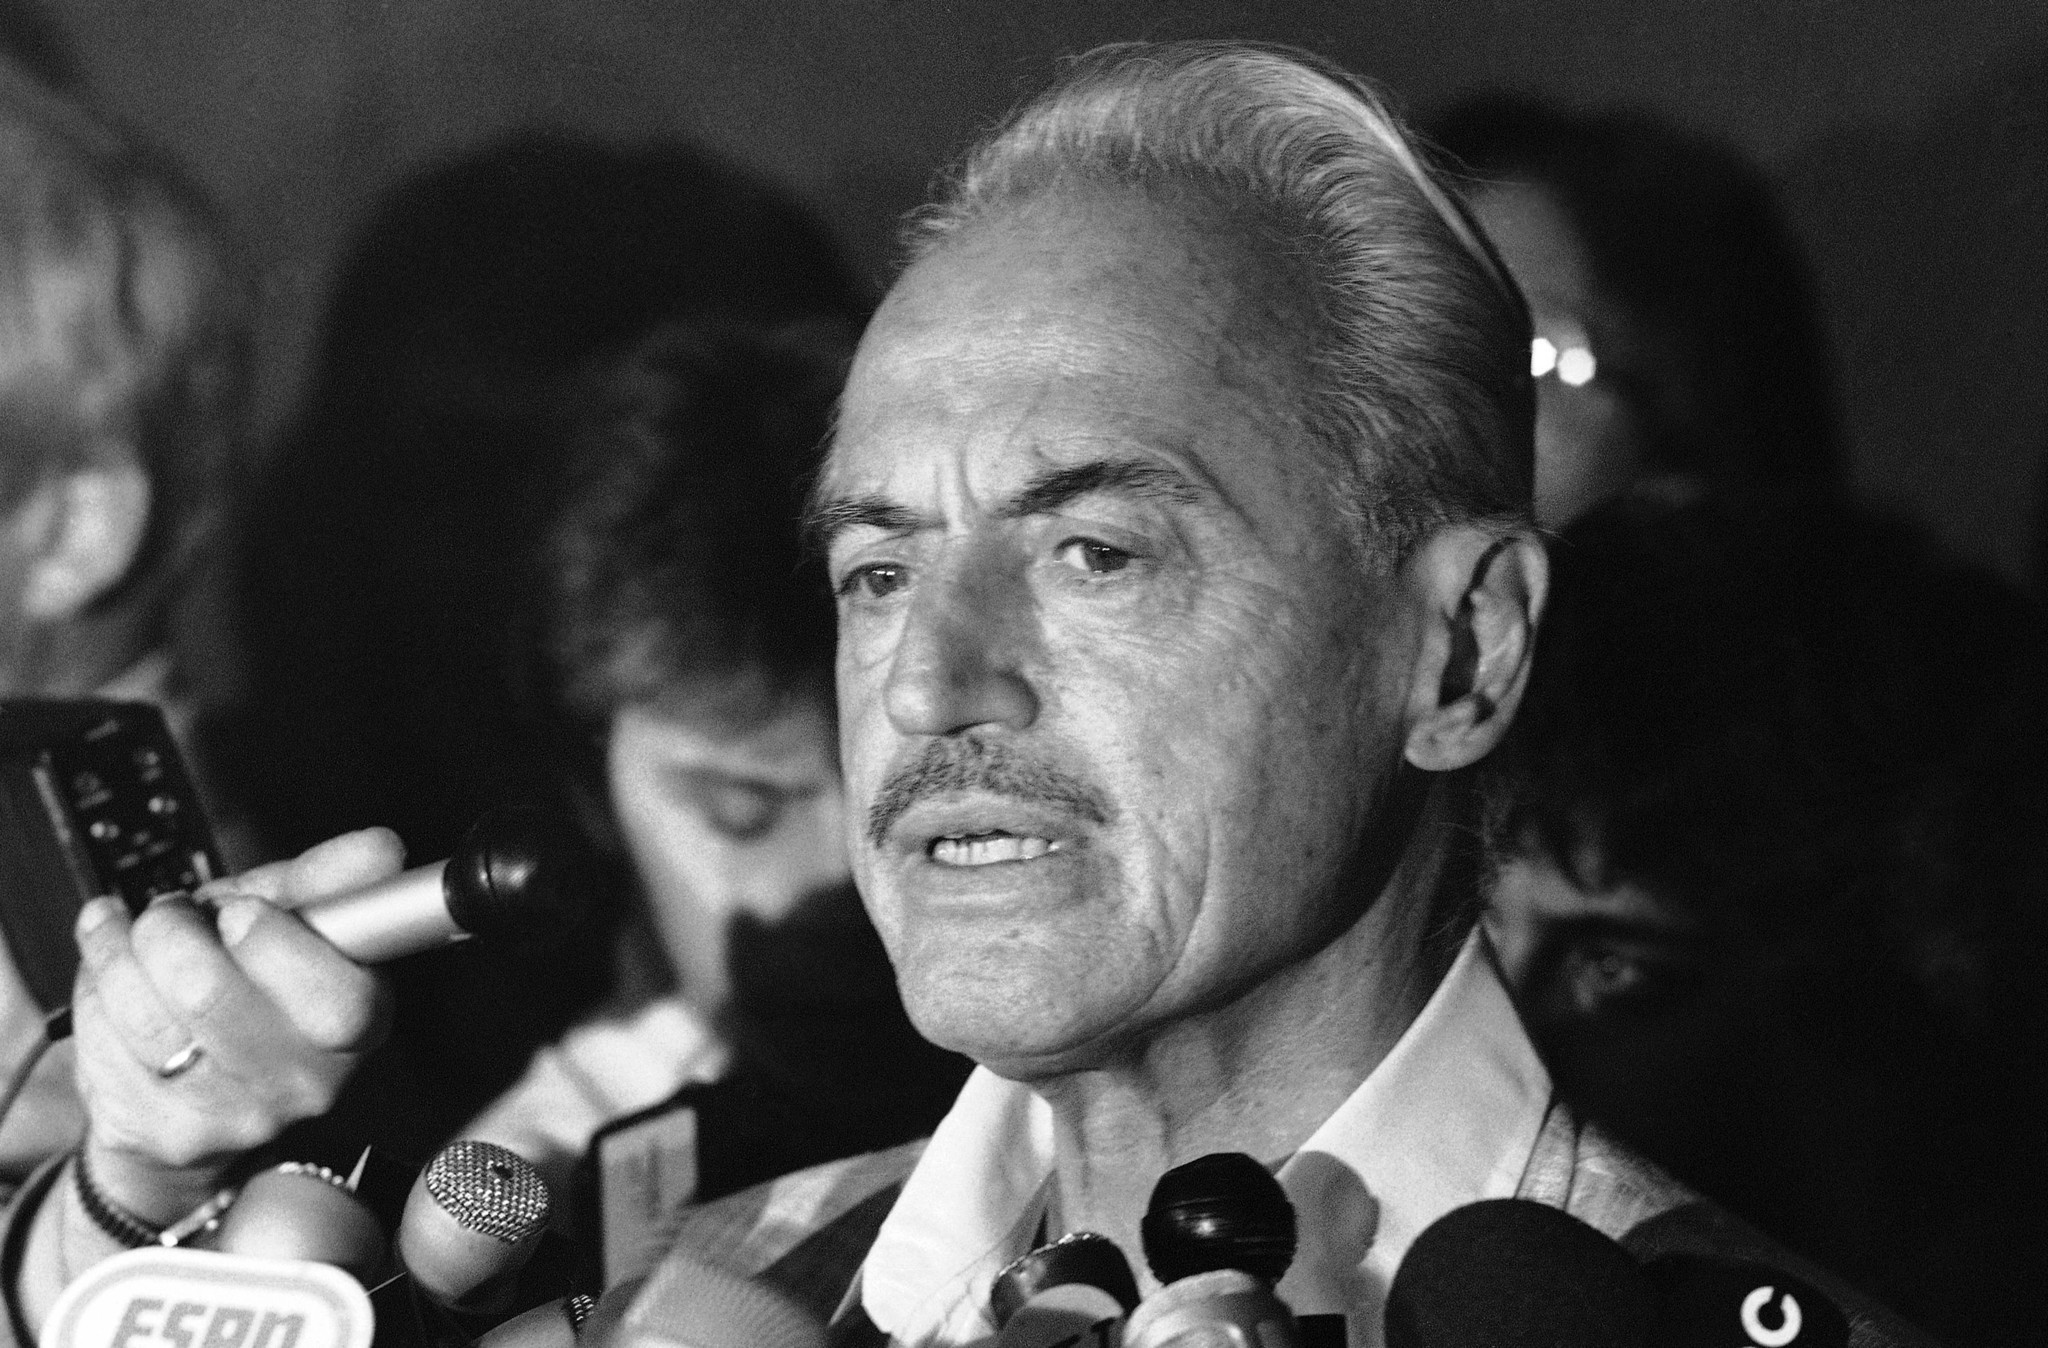 With Marvin Miller's election, the Baseball Hall of Fame is now whole